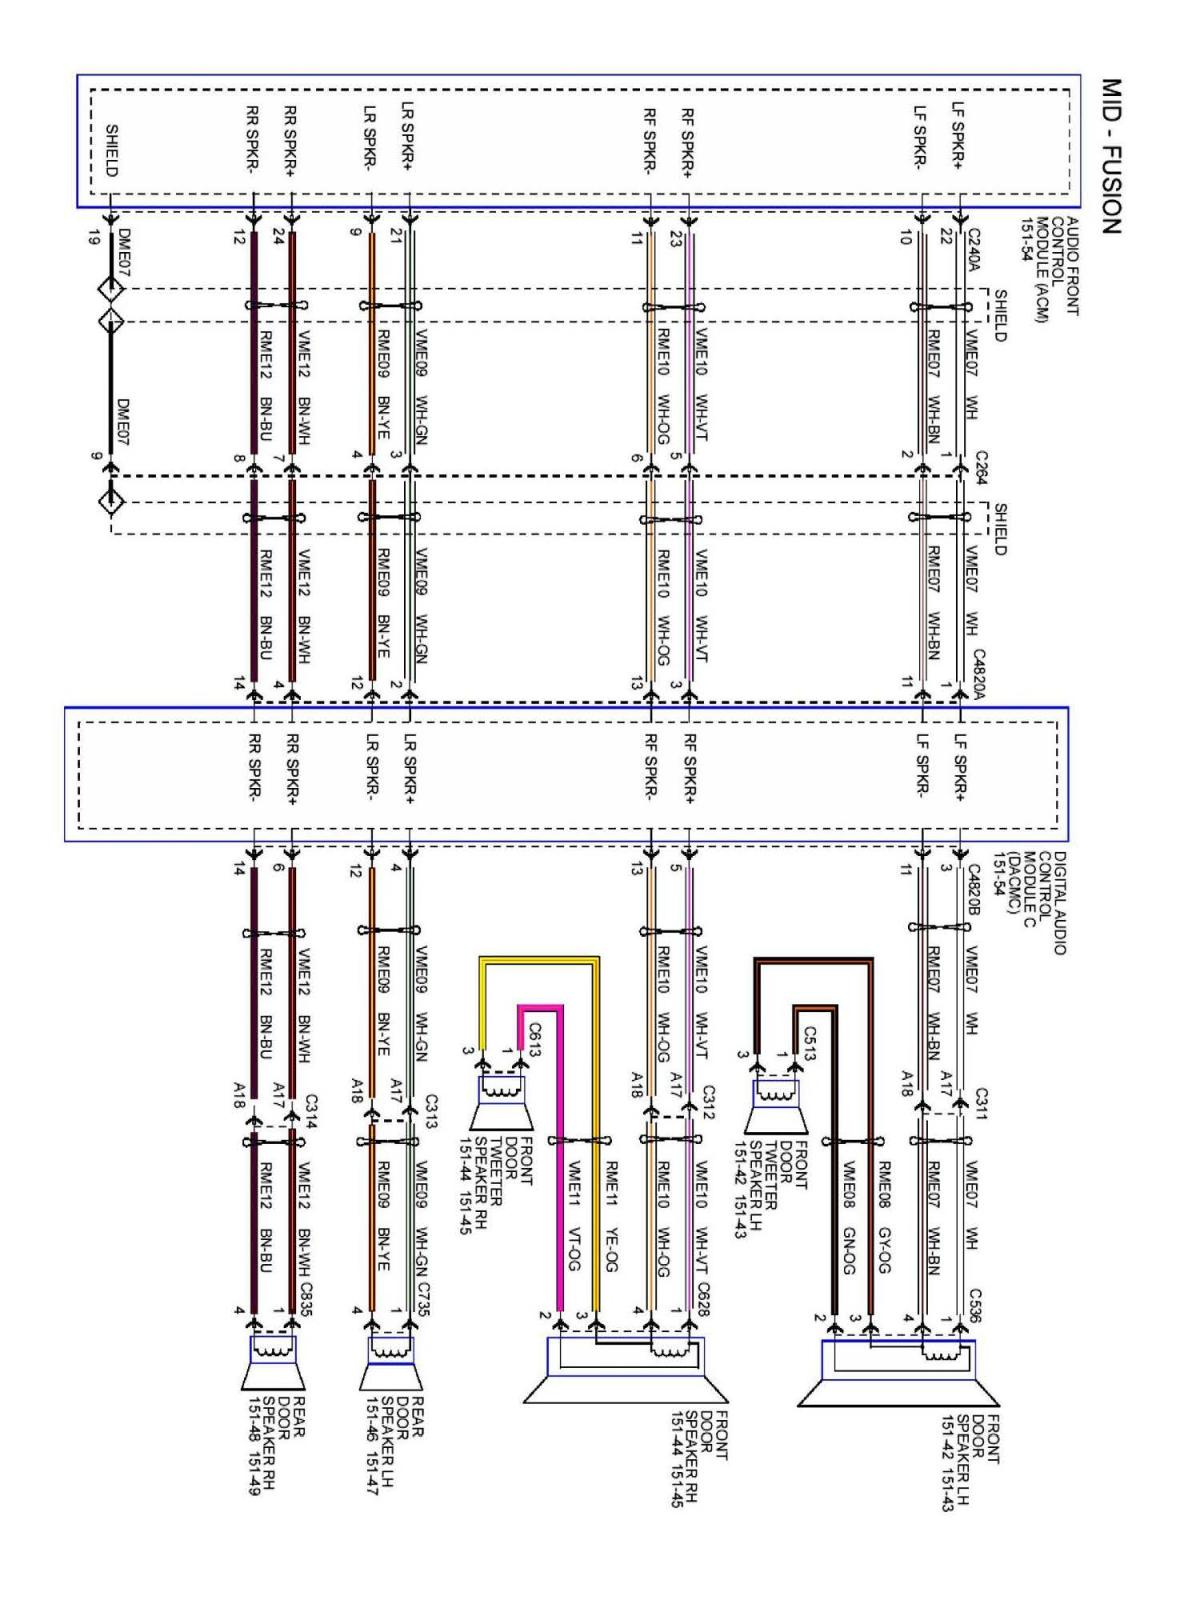 DIAGRAM] Ford Fusion Wire Diagram Wiring Diagram FULL Version HD Quality Wiring  Diagram - PENDIAGRAM.HOSTERIA87.IT | 2015 Ford Fusion Wiring Diagram |  | Diagram Database